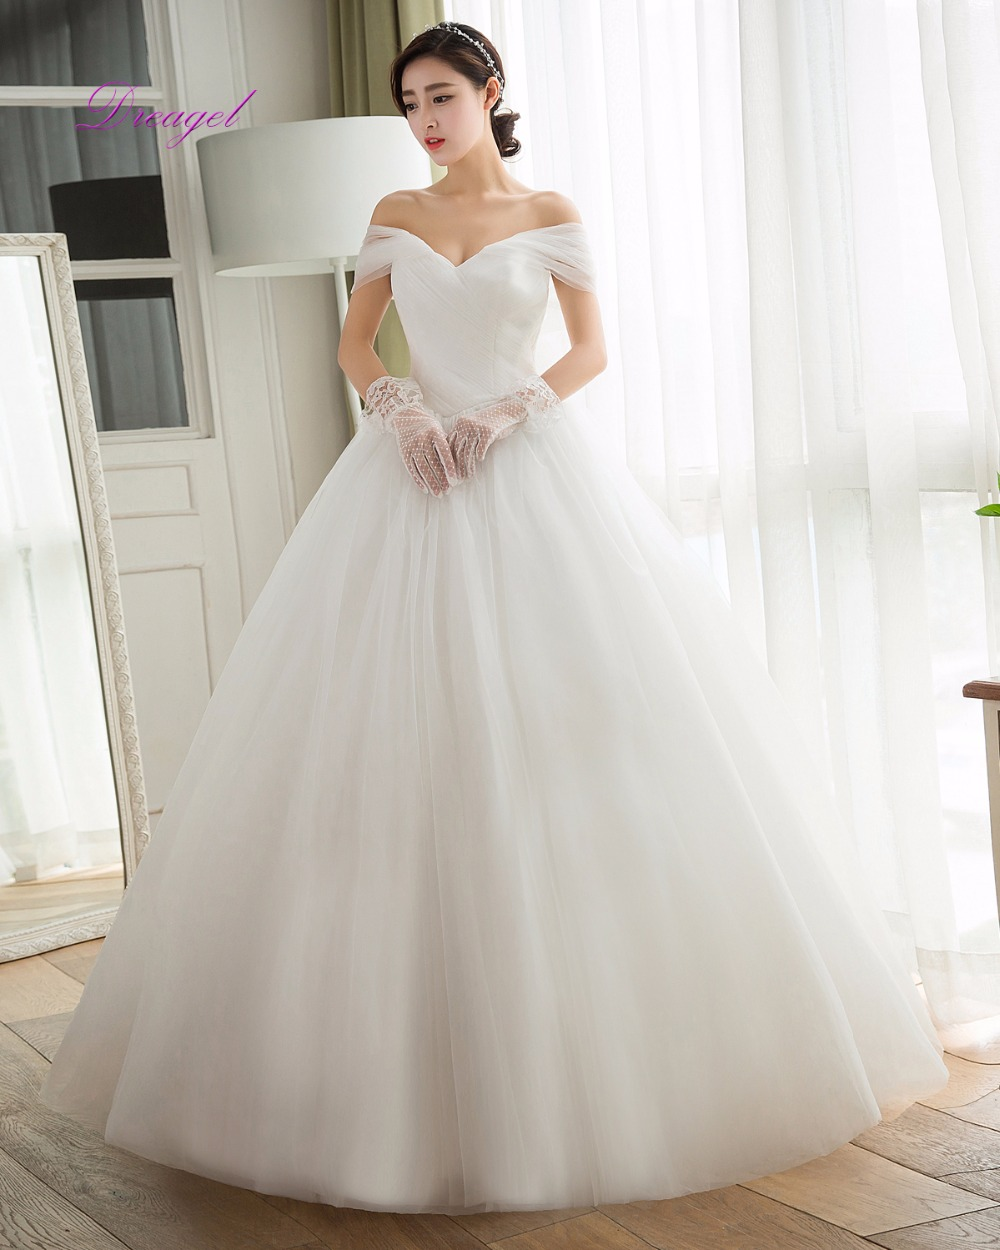 Dreagel New Design Glamorous Boat Neck Bohemian Wedding Dress 2019 Delicate Pleated Lace Up Robe De Mariage Vintage Wedding Gown